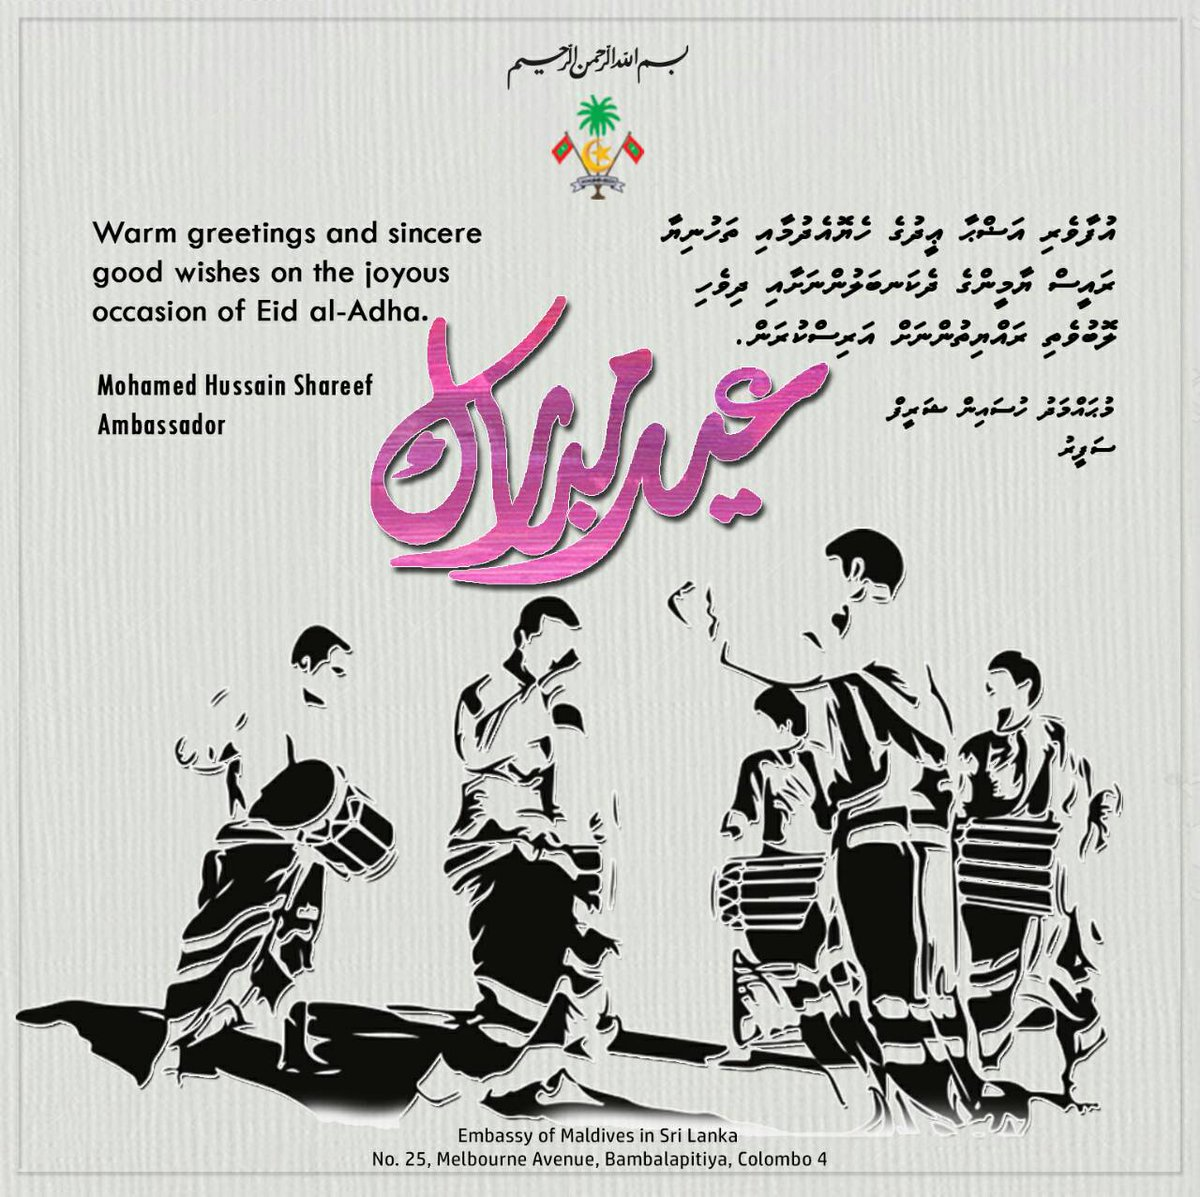 Mdv Embassy Srilanka On Twitter Warm Greetings And Sincere Good